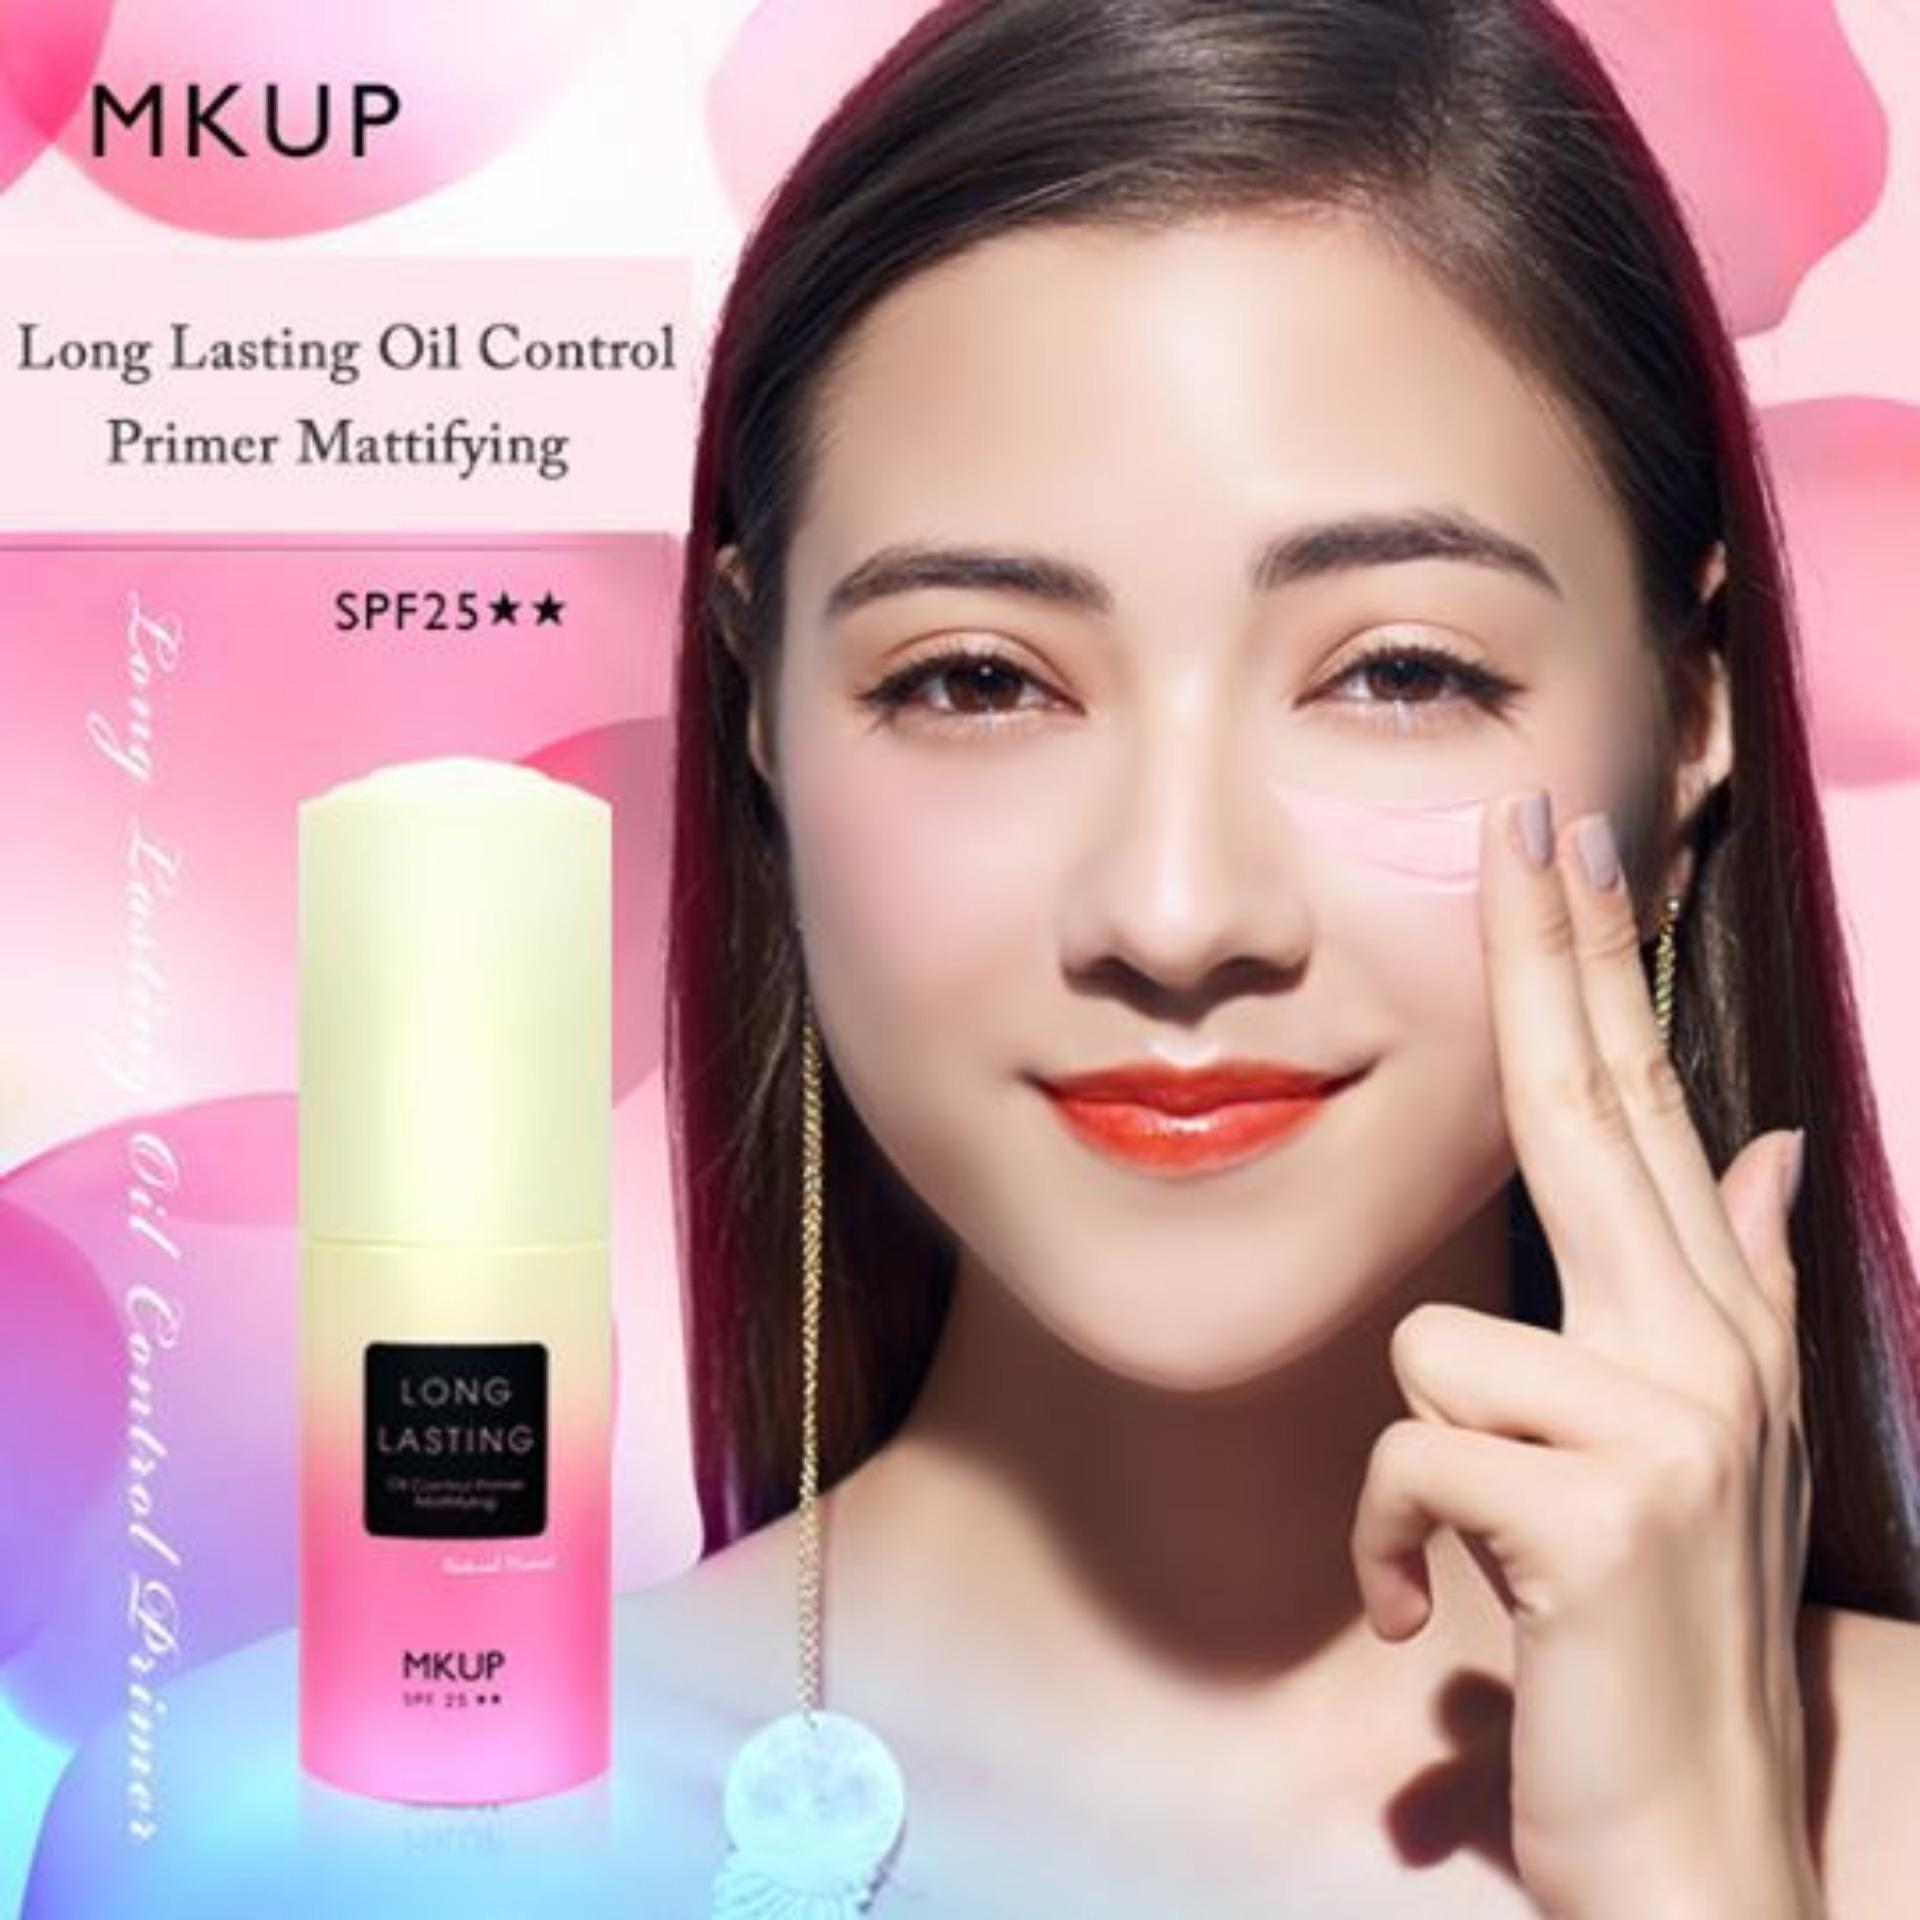 Low Price Mkup® Long Lasting Oil Control Primer Mattifying